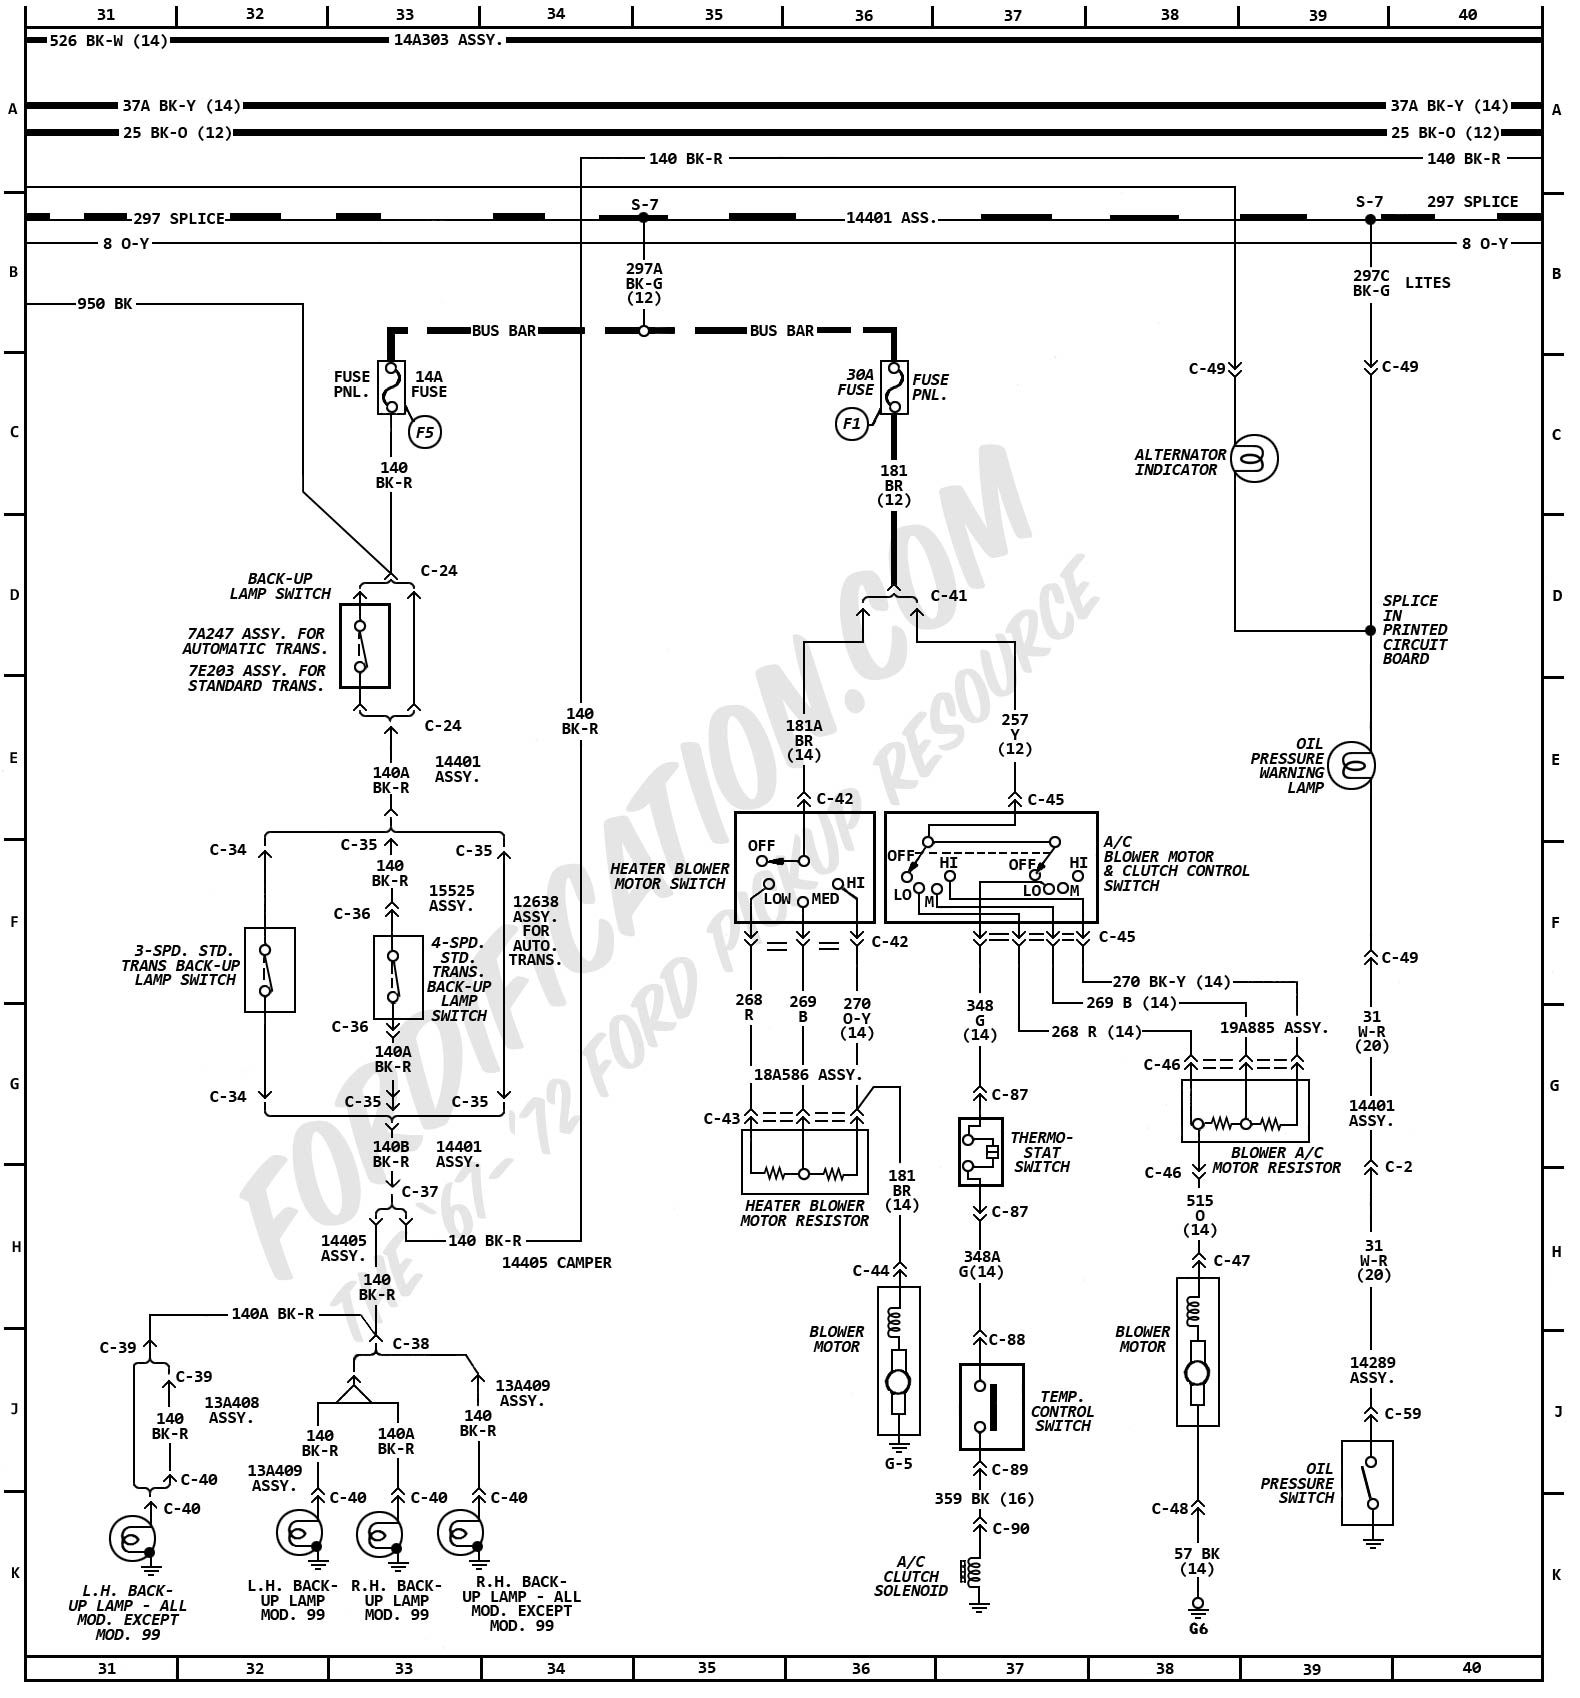 1972 ford truck wiring diagrams. Ford Expedition 5 4l Engine ...